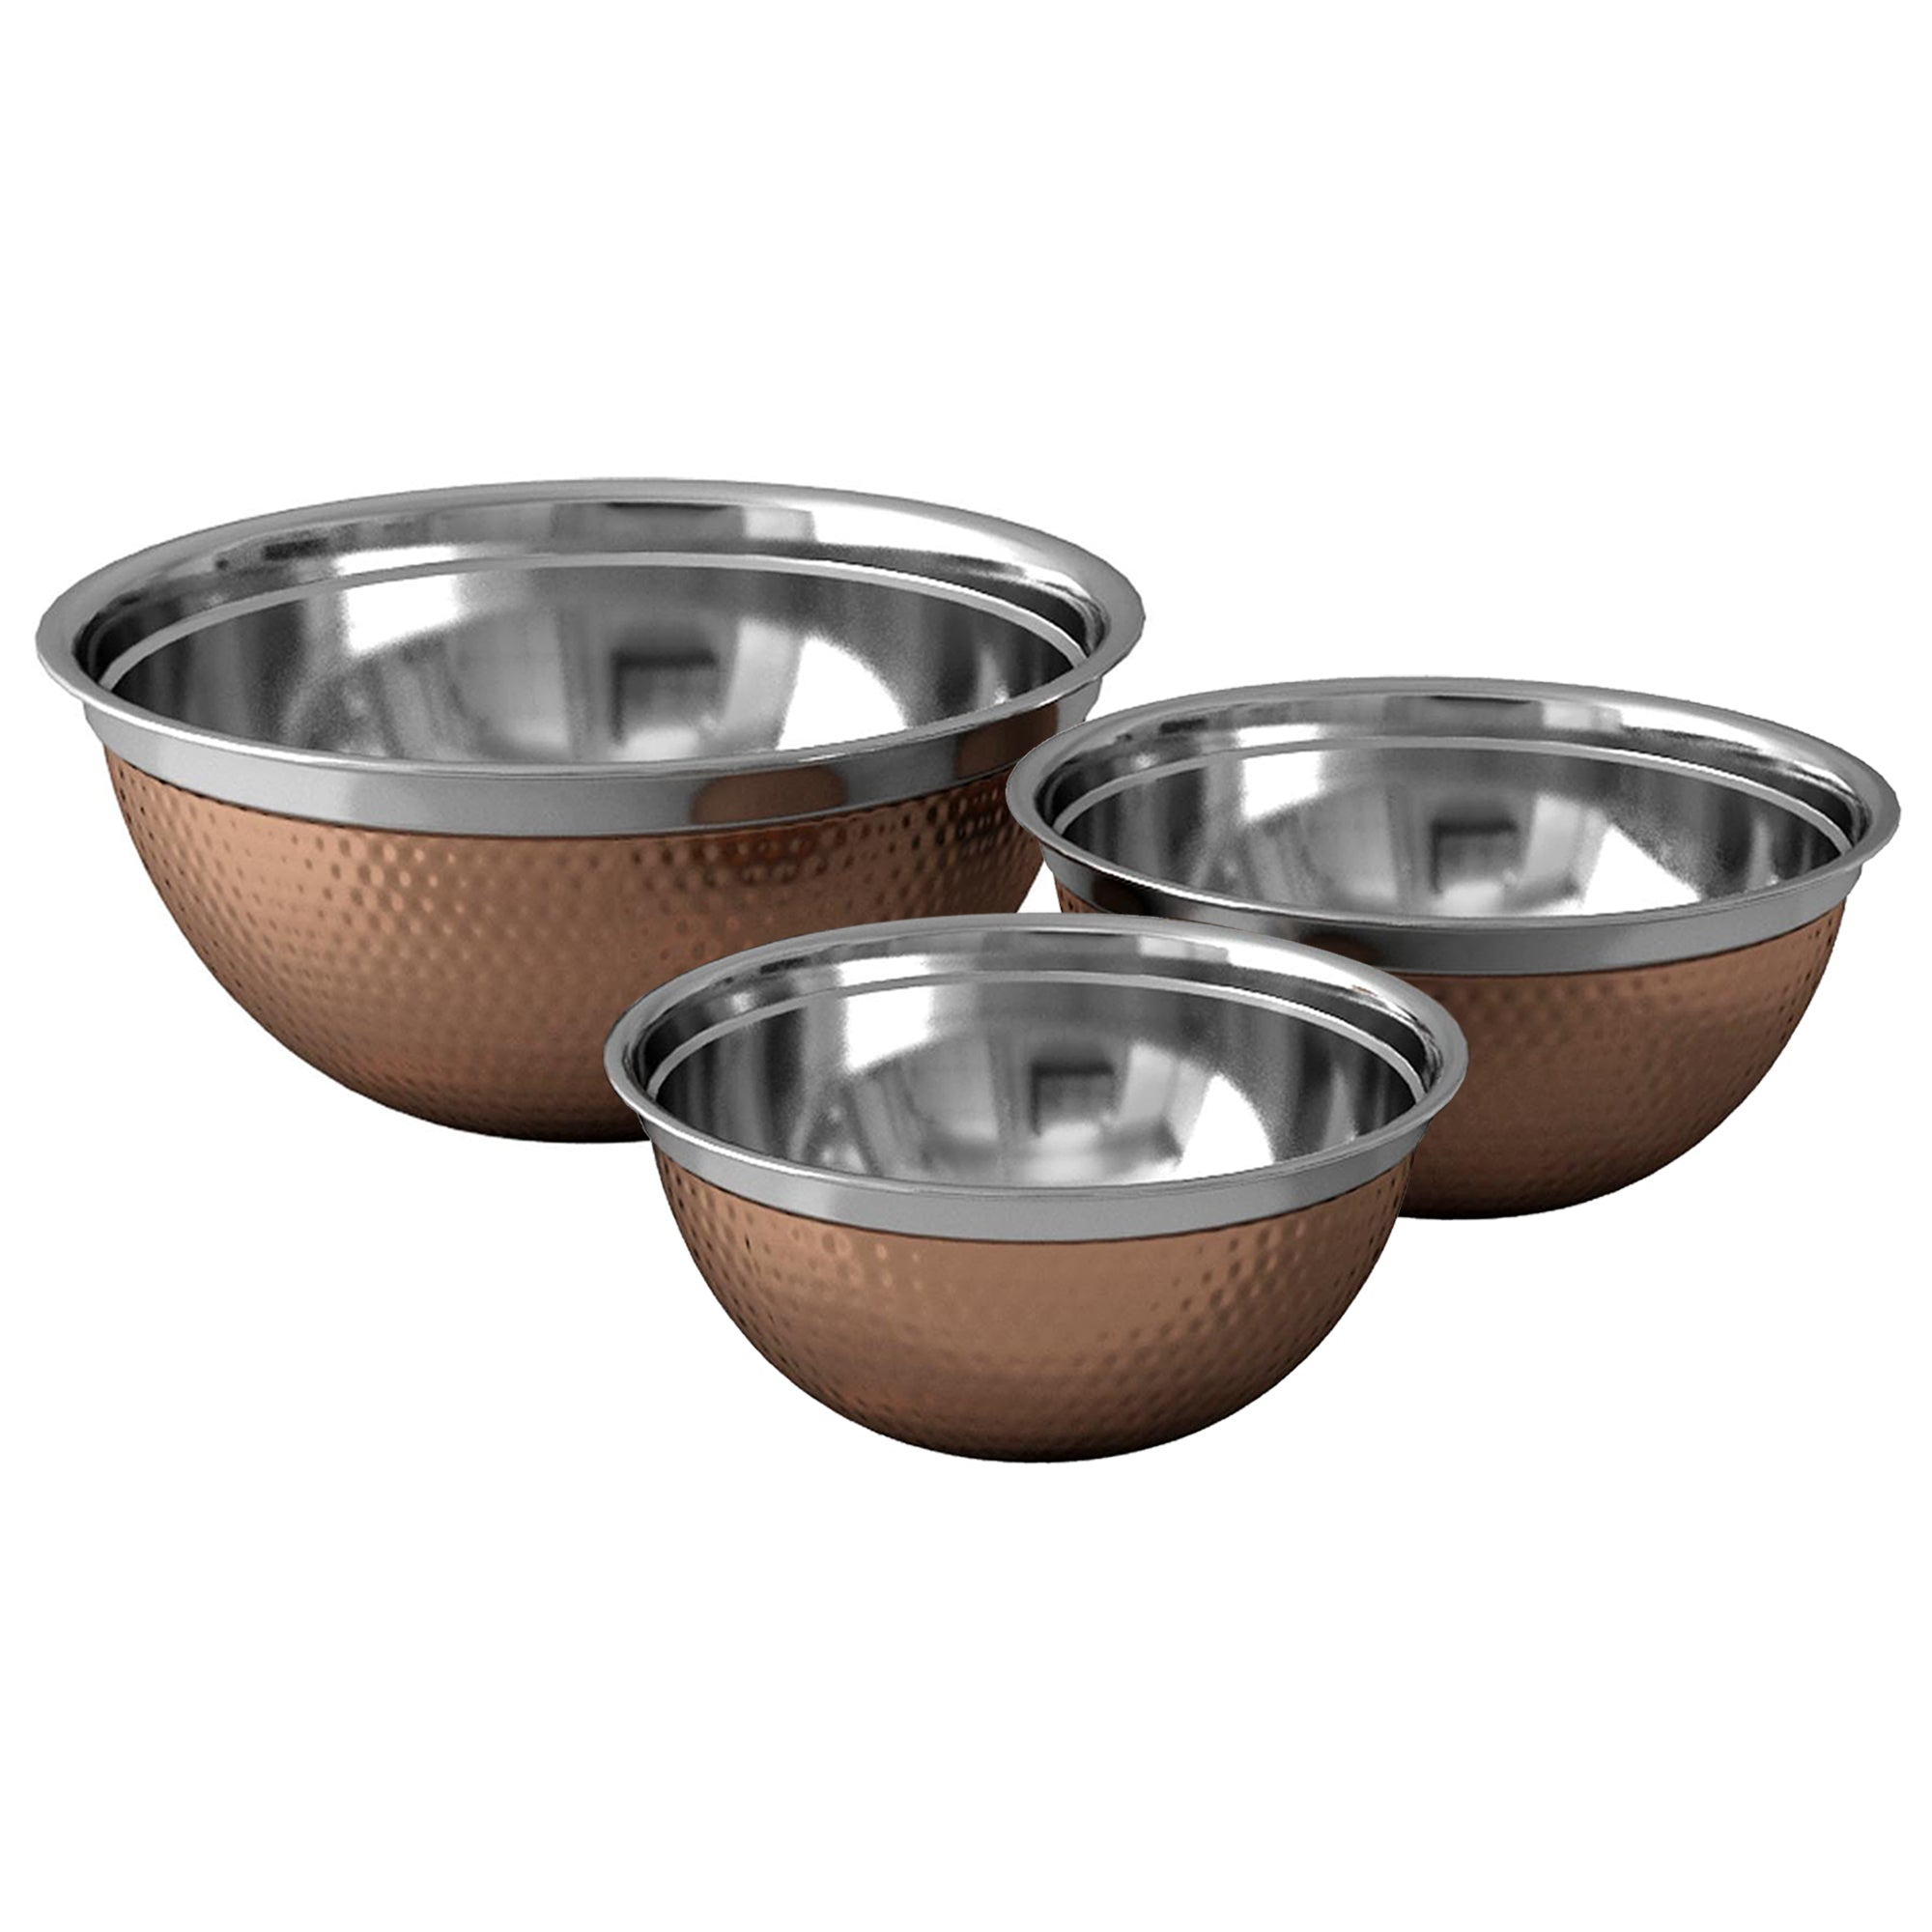 GERMAN BOWL SET/3 COPPER PLATED HAMMERED 0.5MM - 1.5QT, 3QT, 5QT TG-GB-3CH